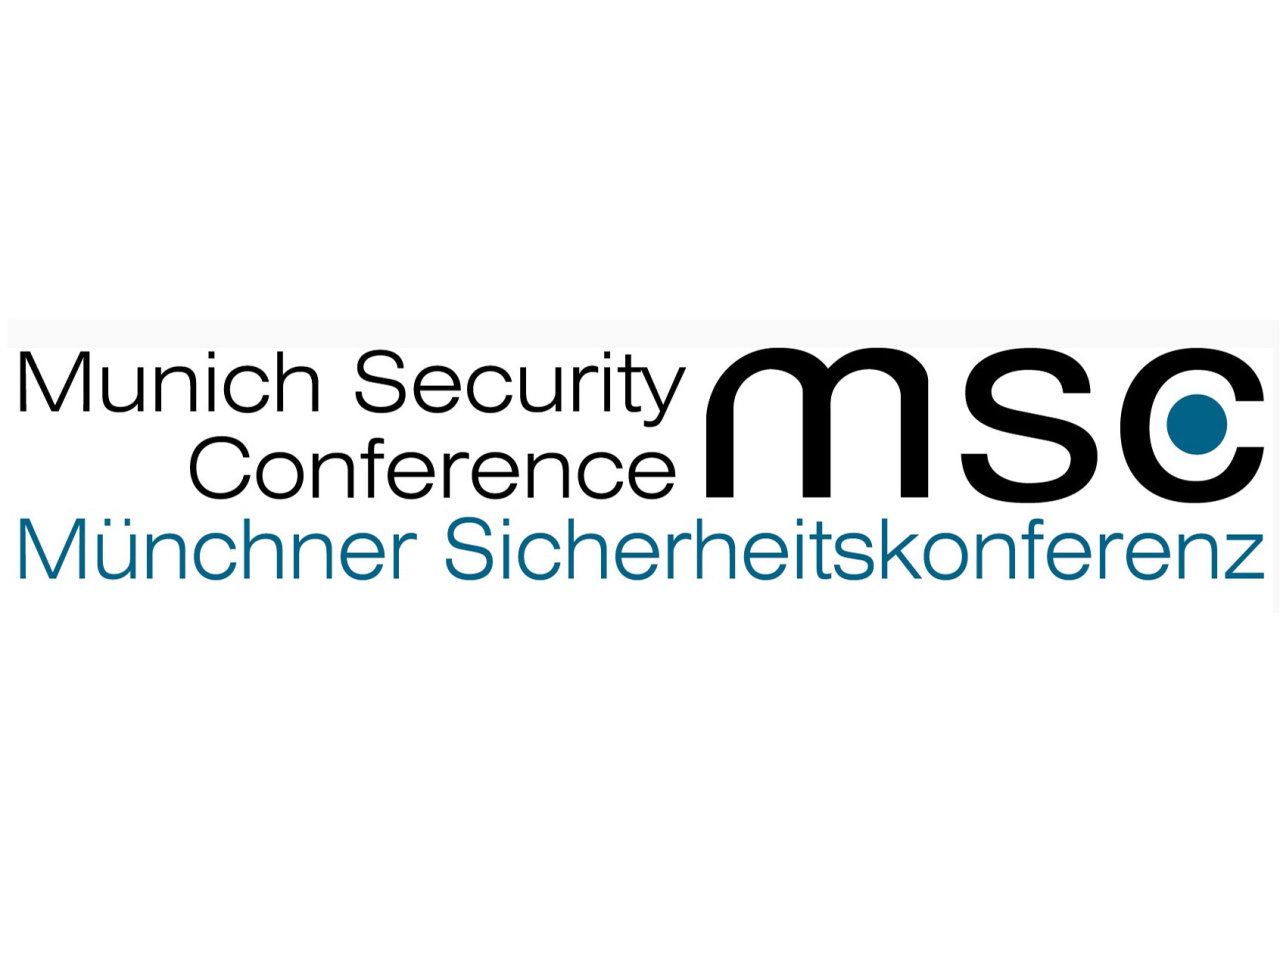 Photo: Iran invited to Munich security conference / Iran